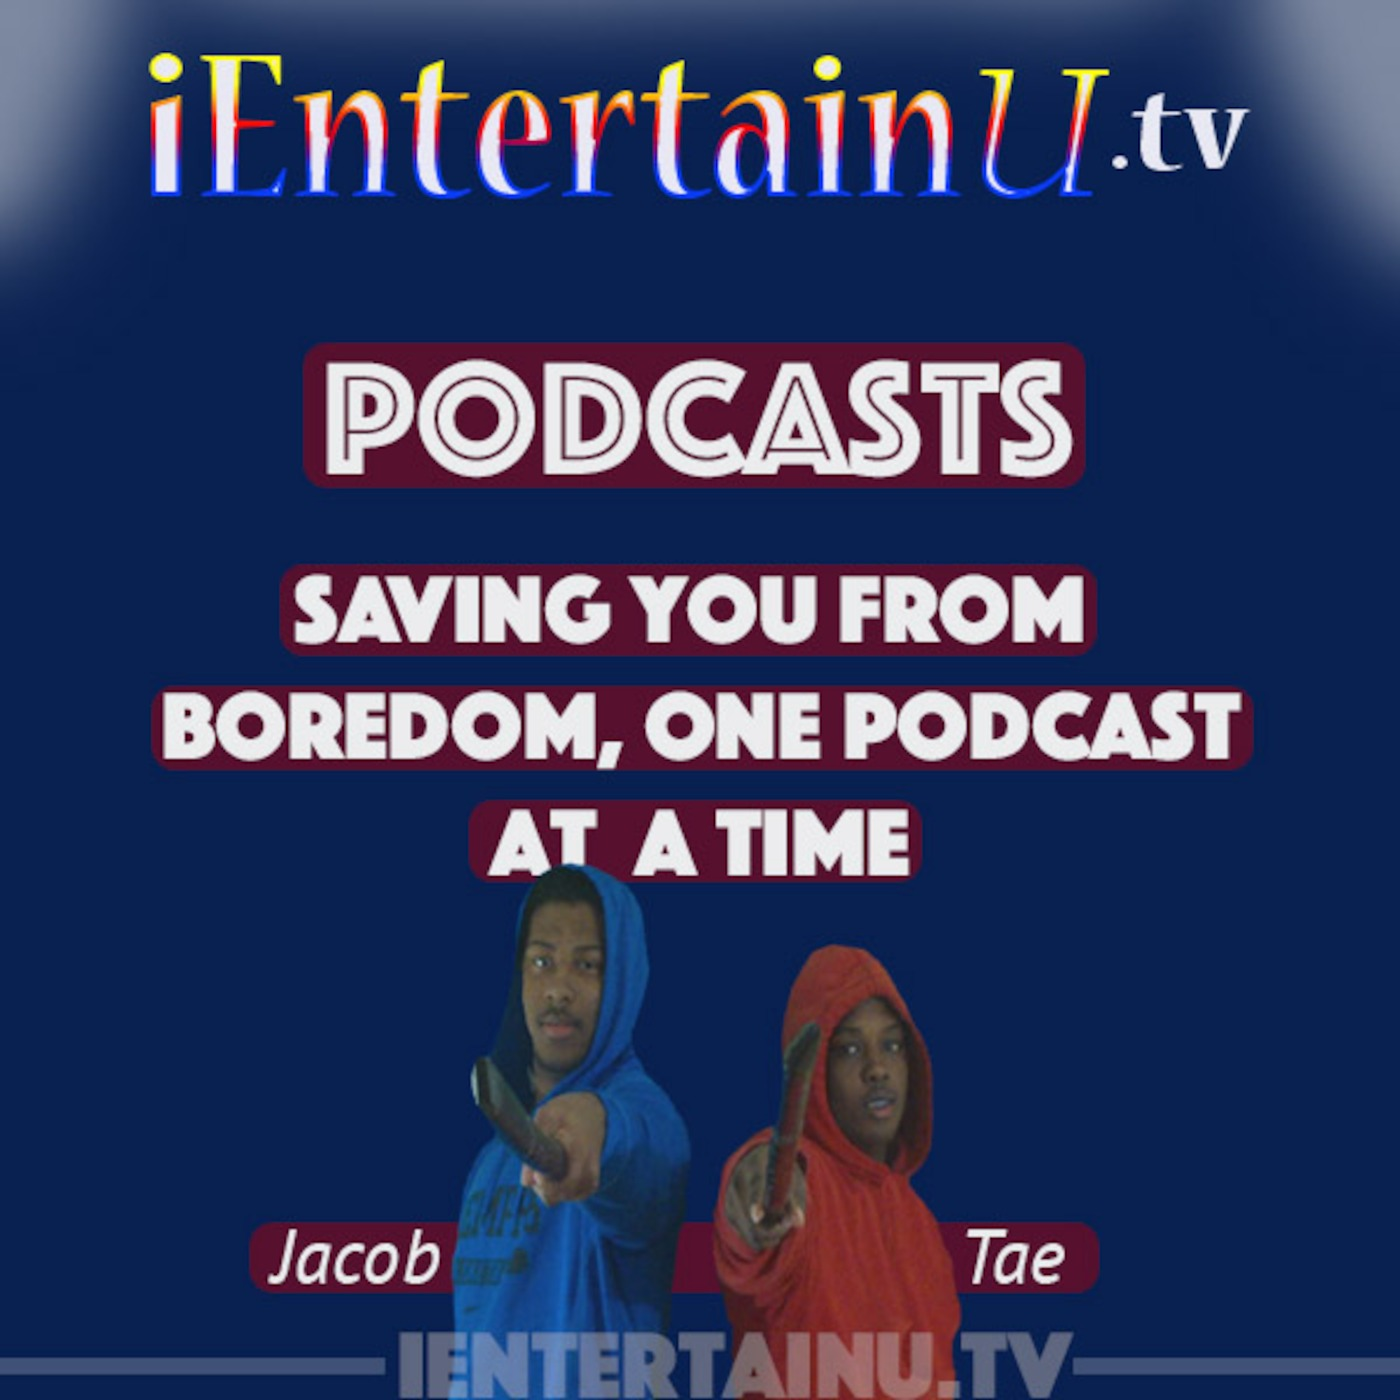 iEntertainU tv's Podcast